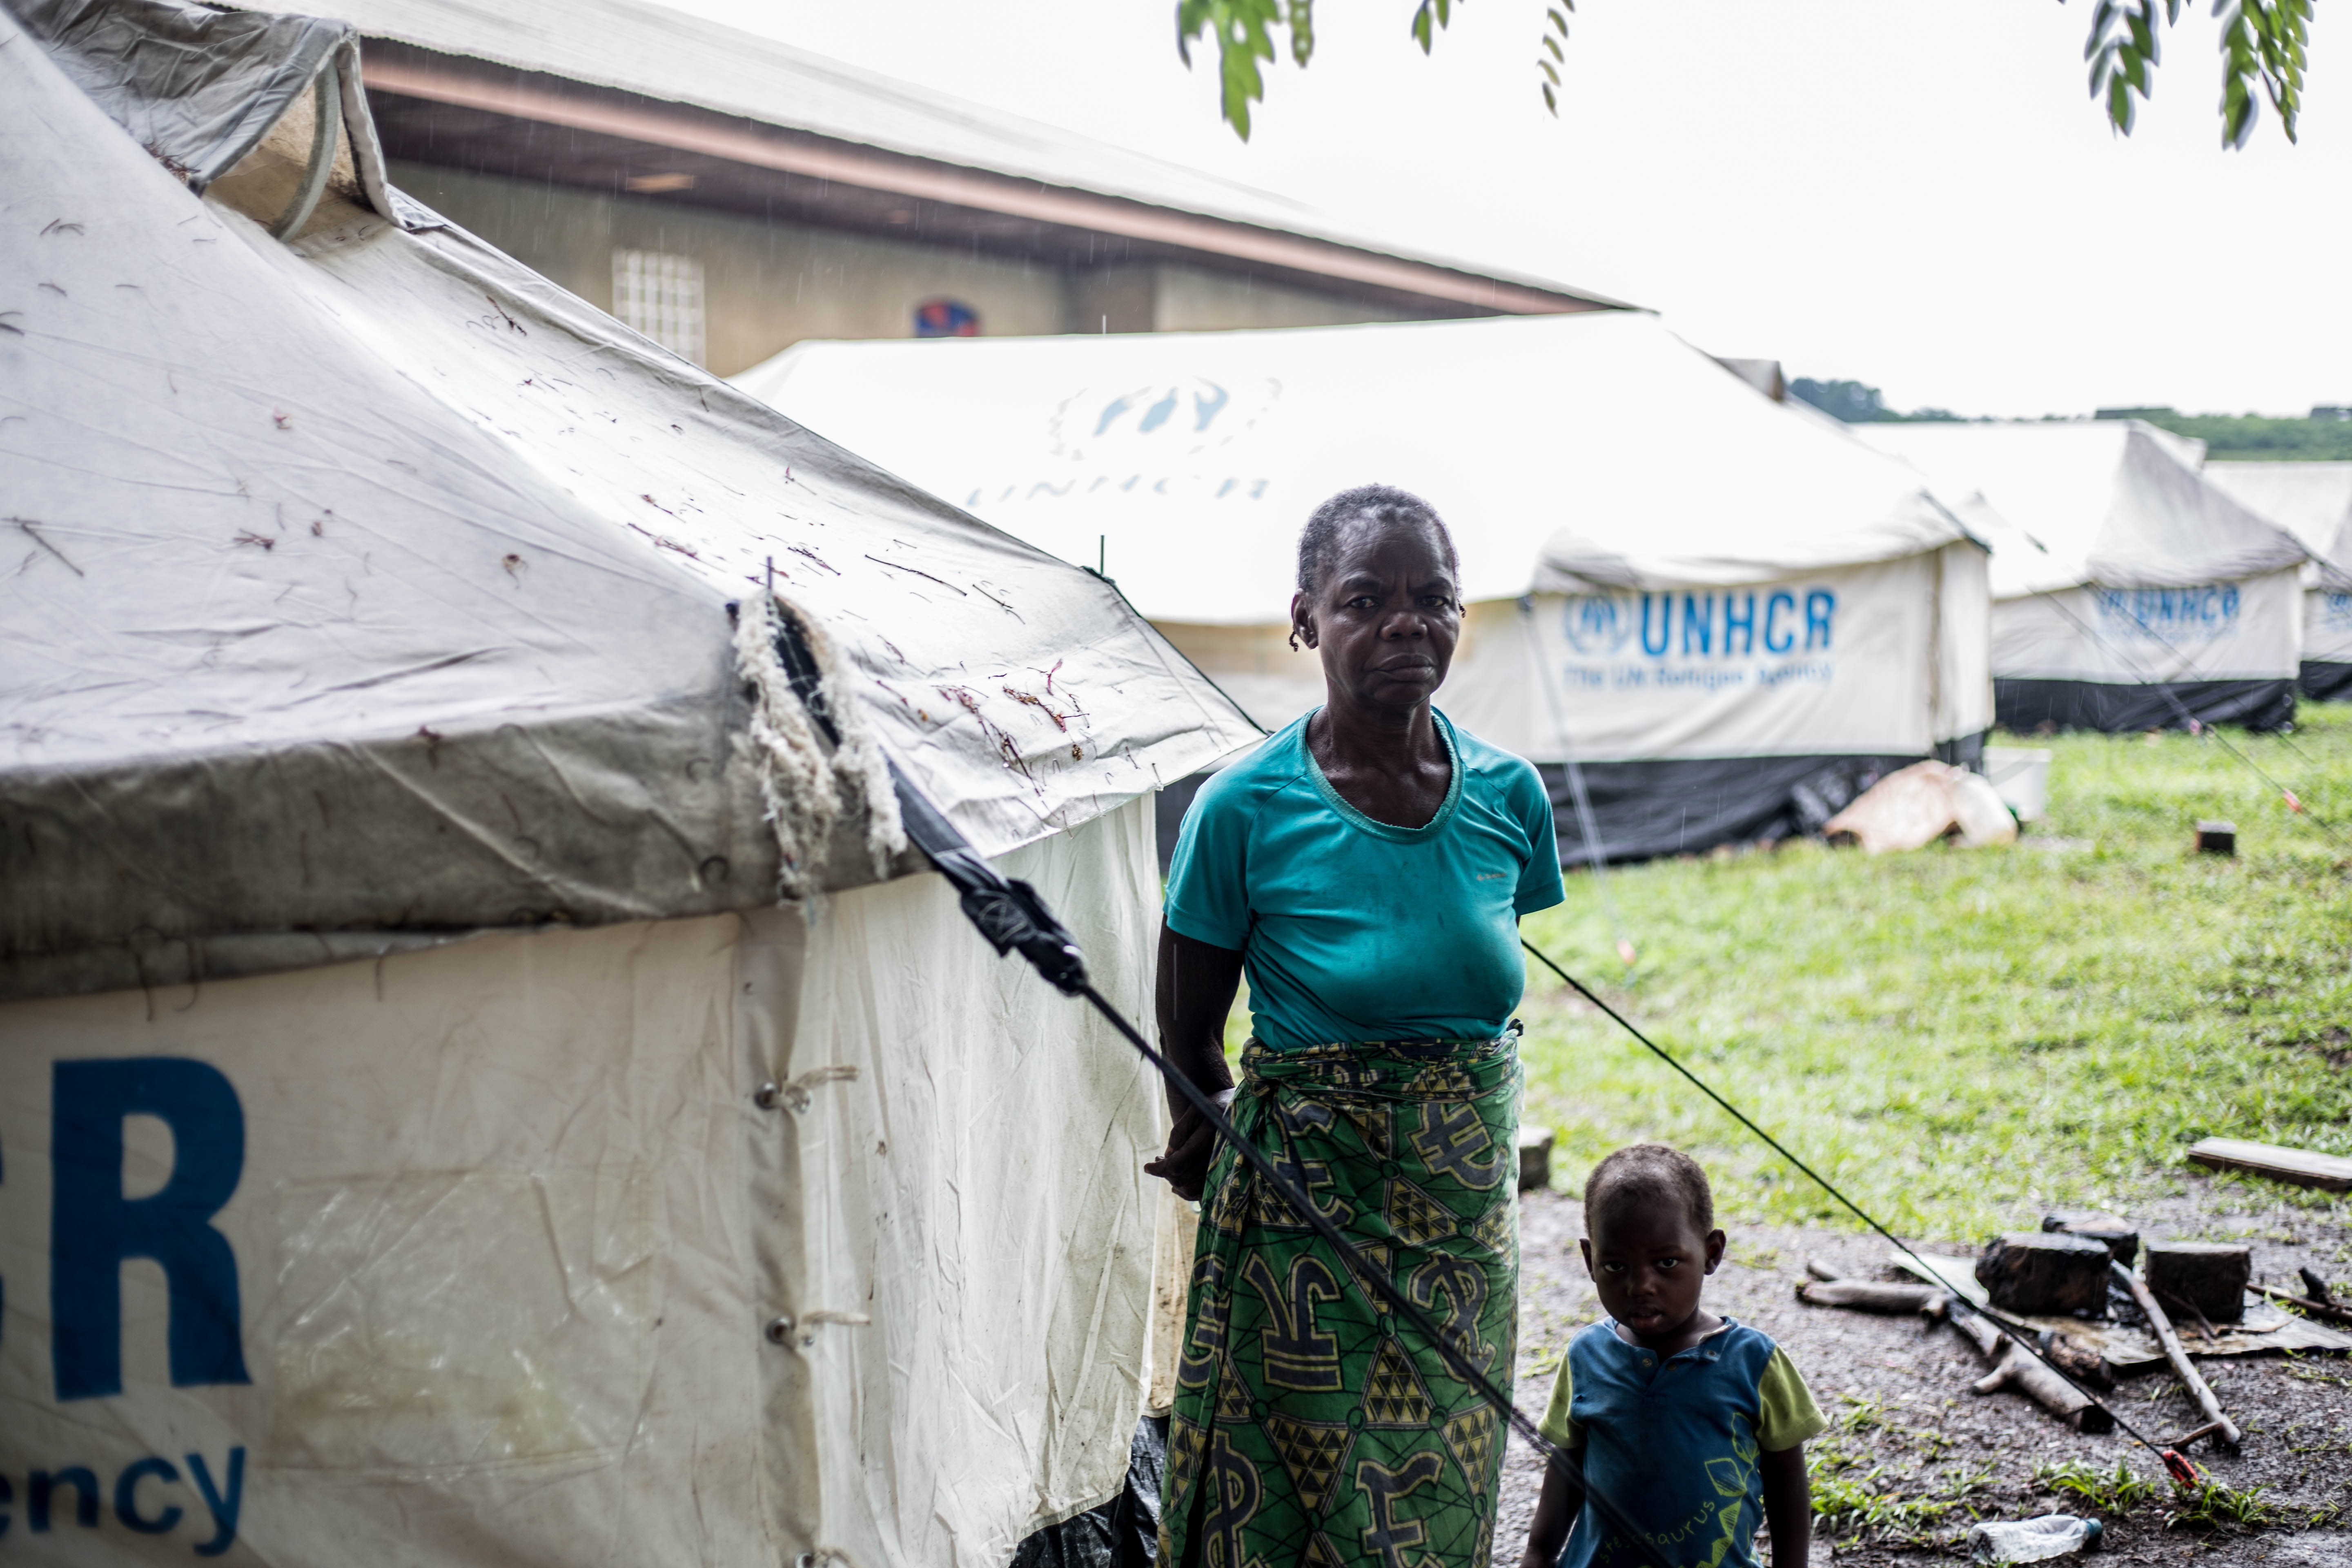 A woman and a child stand in front of a UNHCR tent in the rain facing the camera